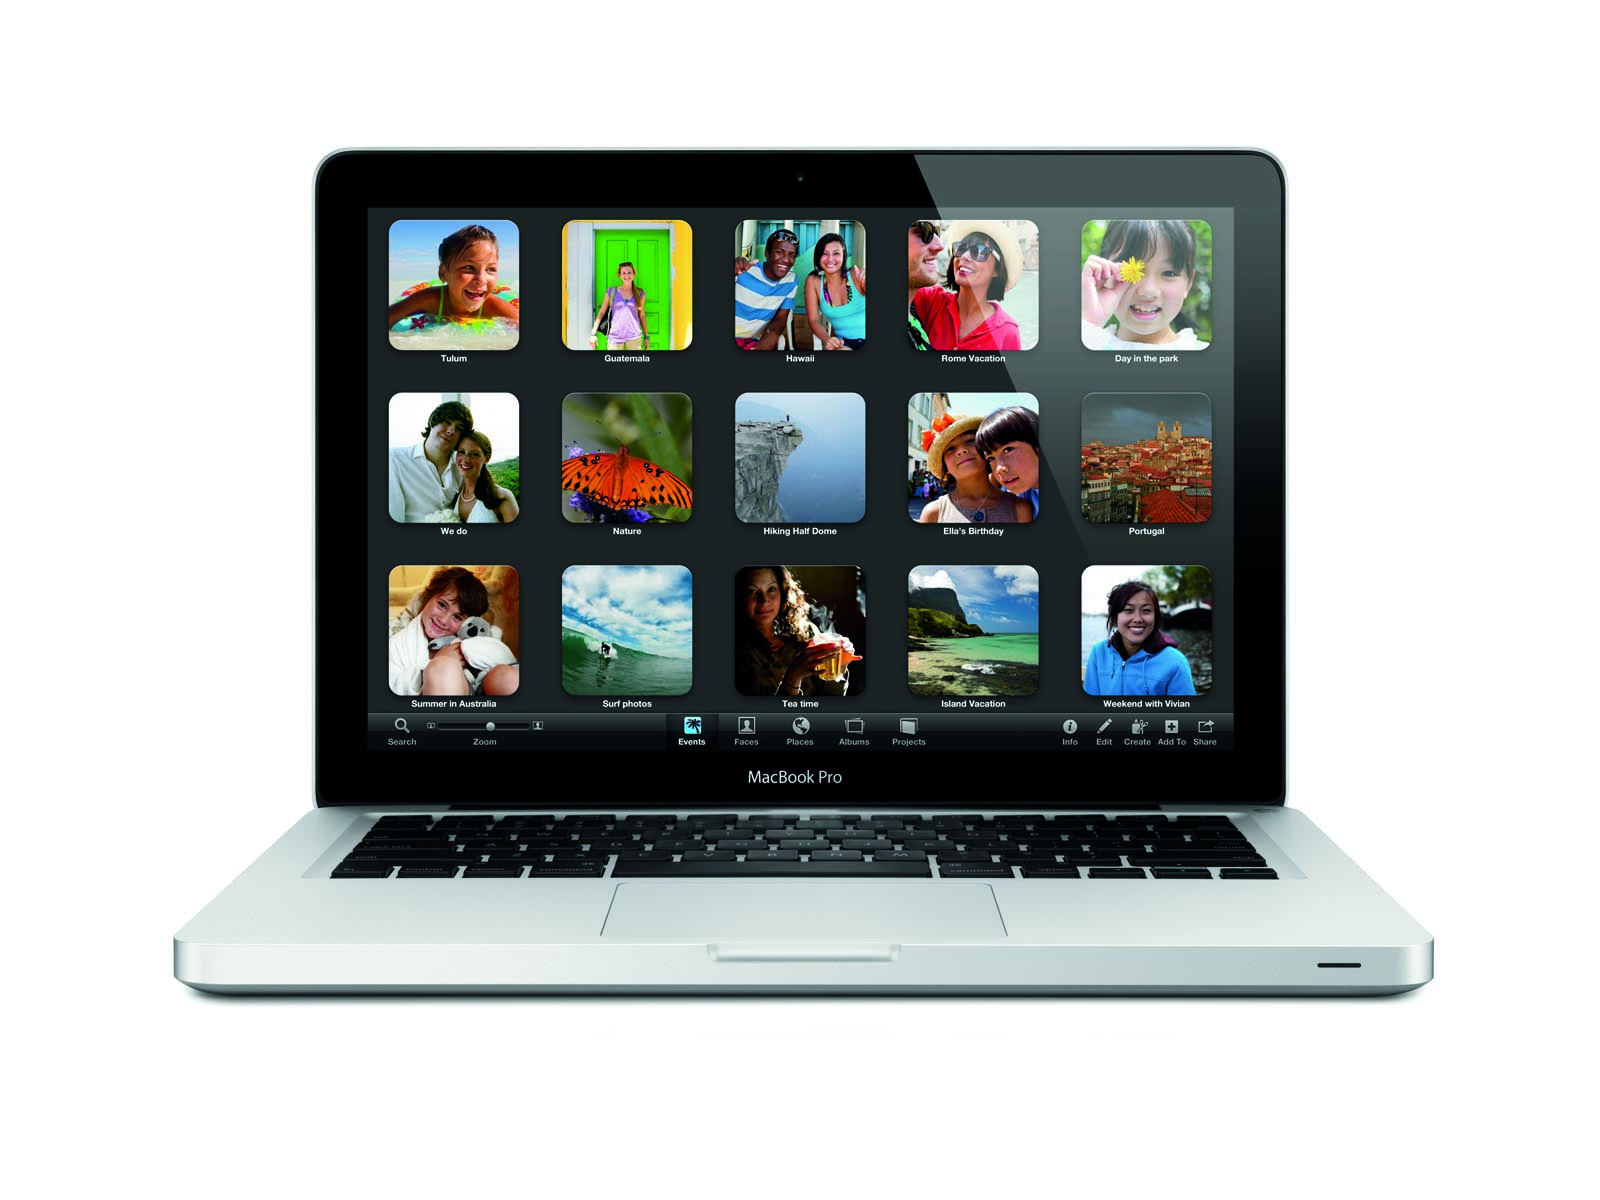 review apple macbook pro 13 2 5 ghz mid 2012 notebook. Black Bedroom Furniture Sets. Home Design Ideas